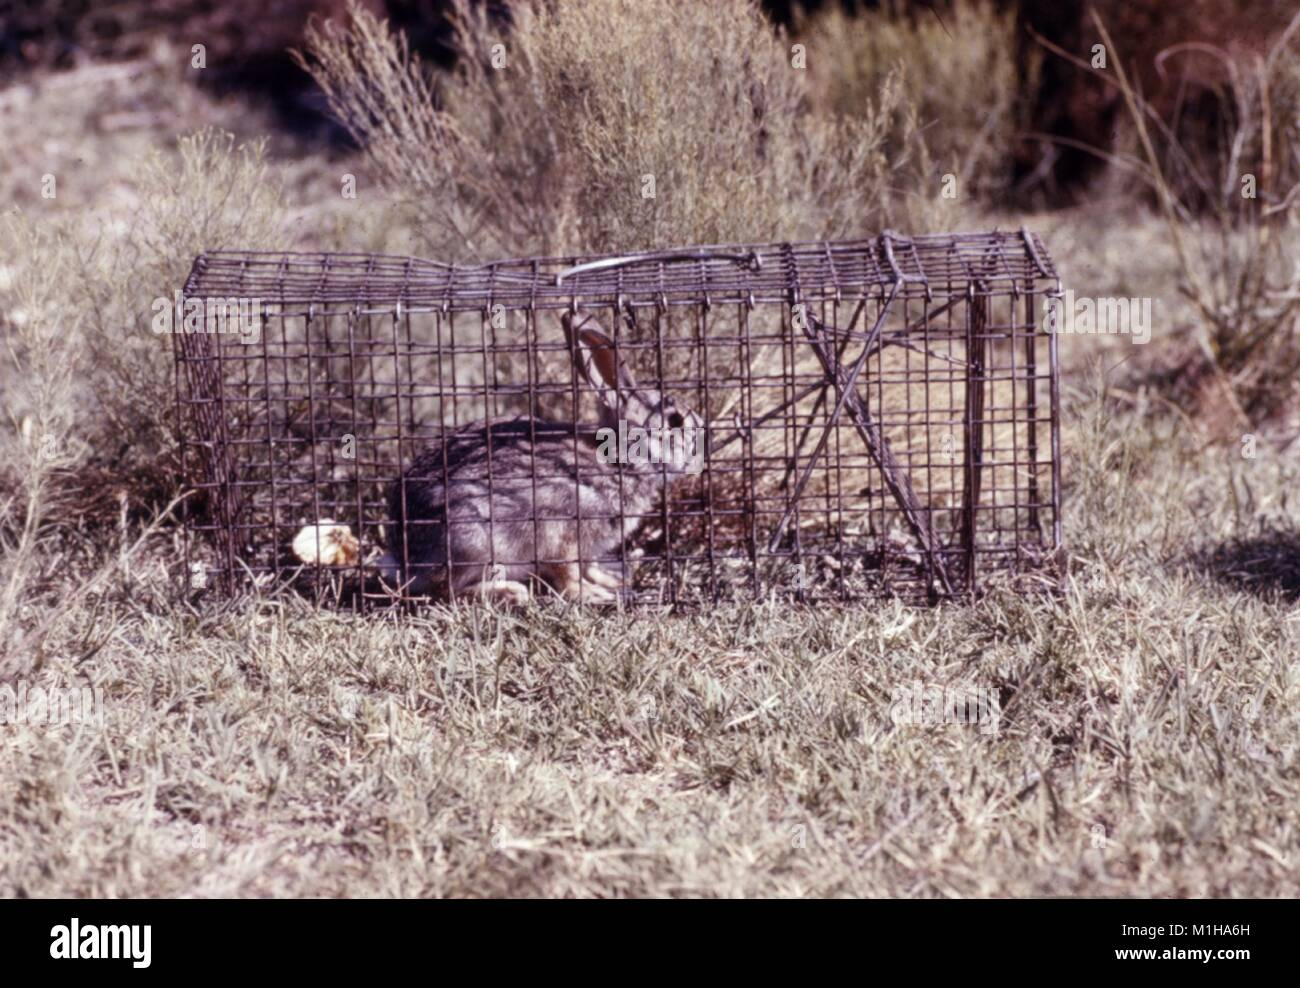 Photograph of a live adult rabbit caught in a metal trap